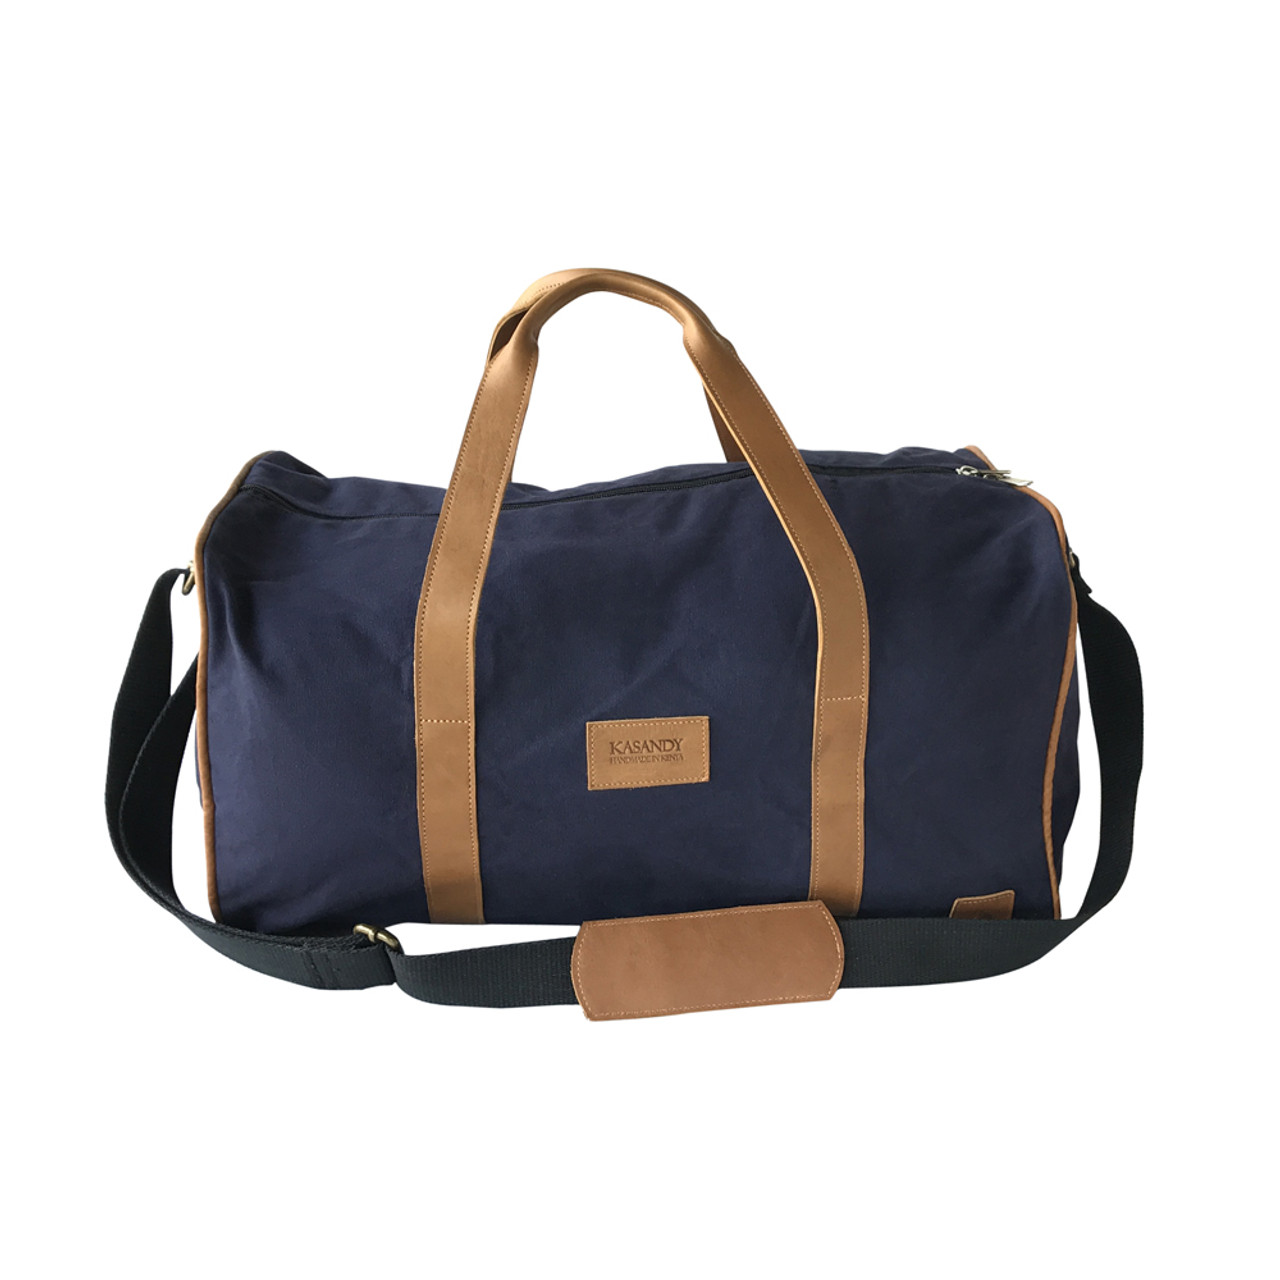 925264b8c114 Travel - Weekender Duffle Bag | Navy Blue Canvas - Leather | Large